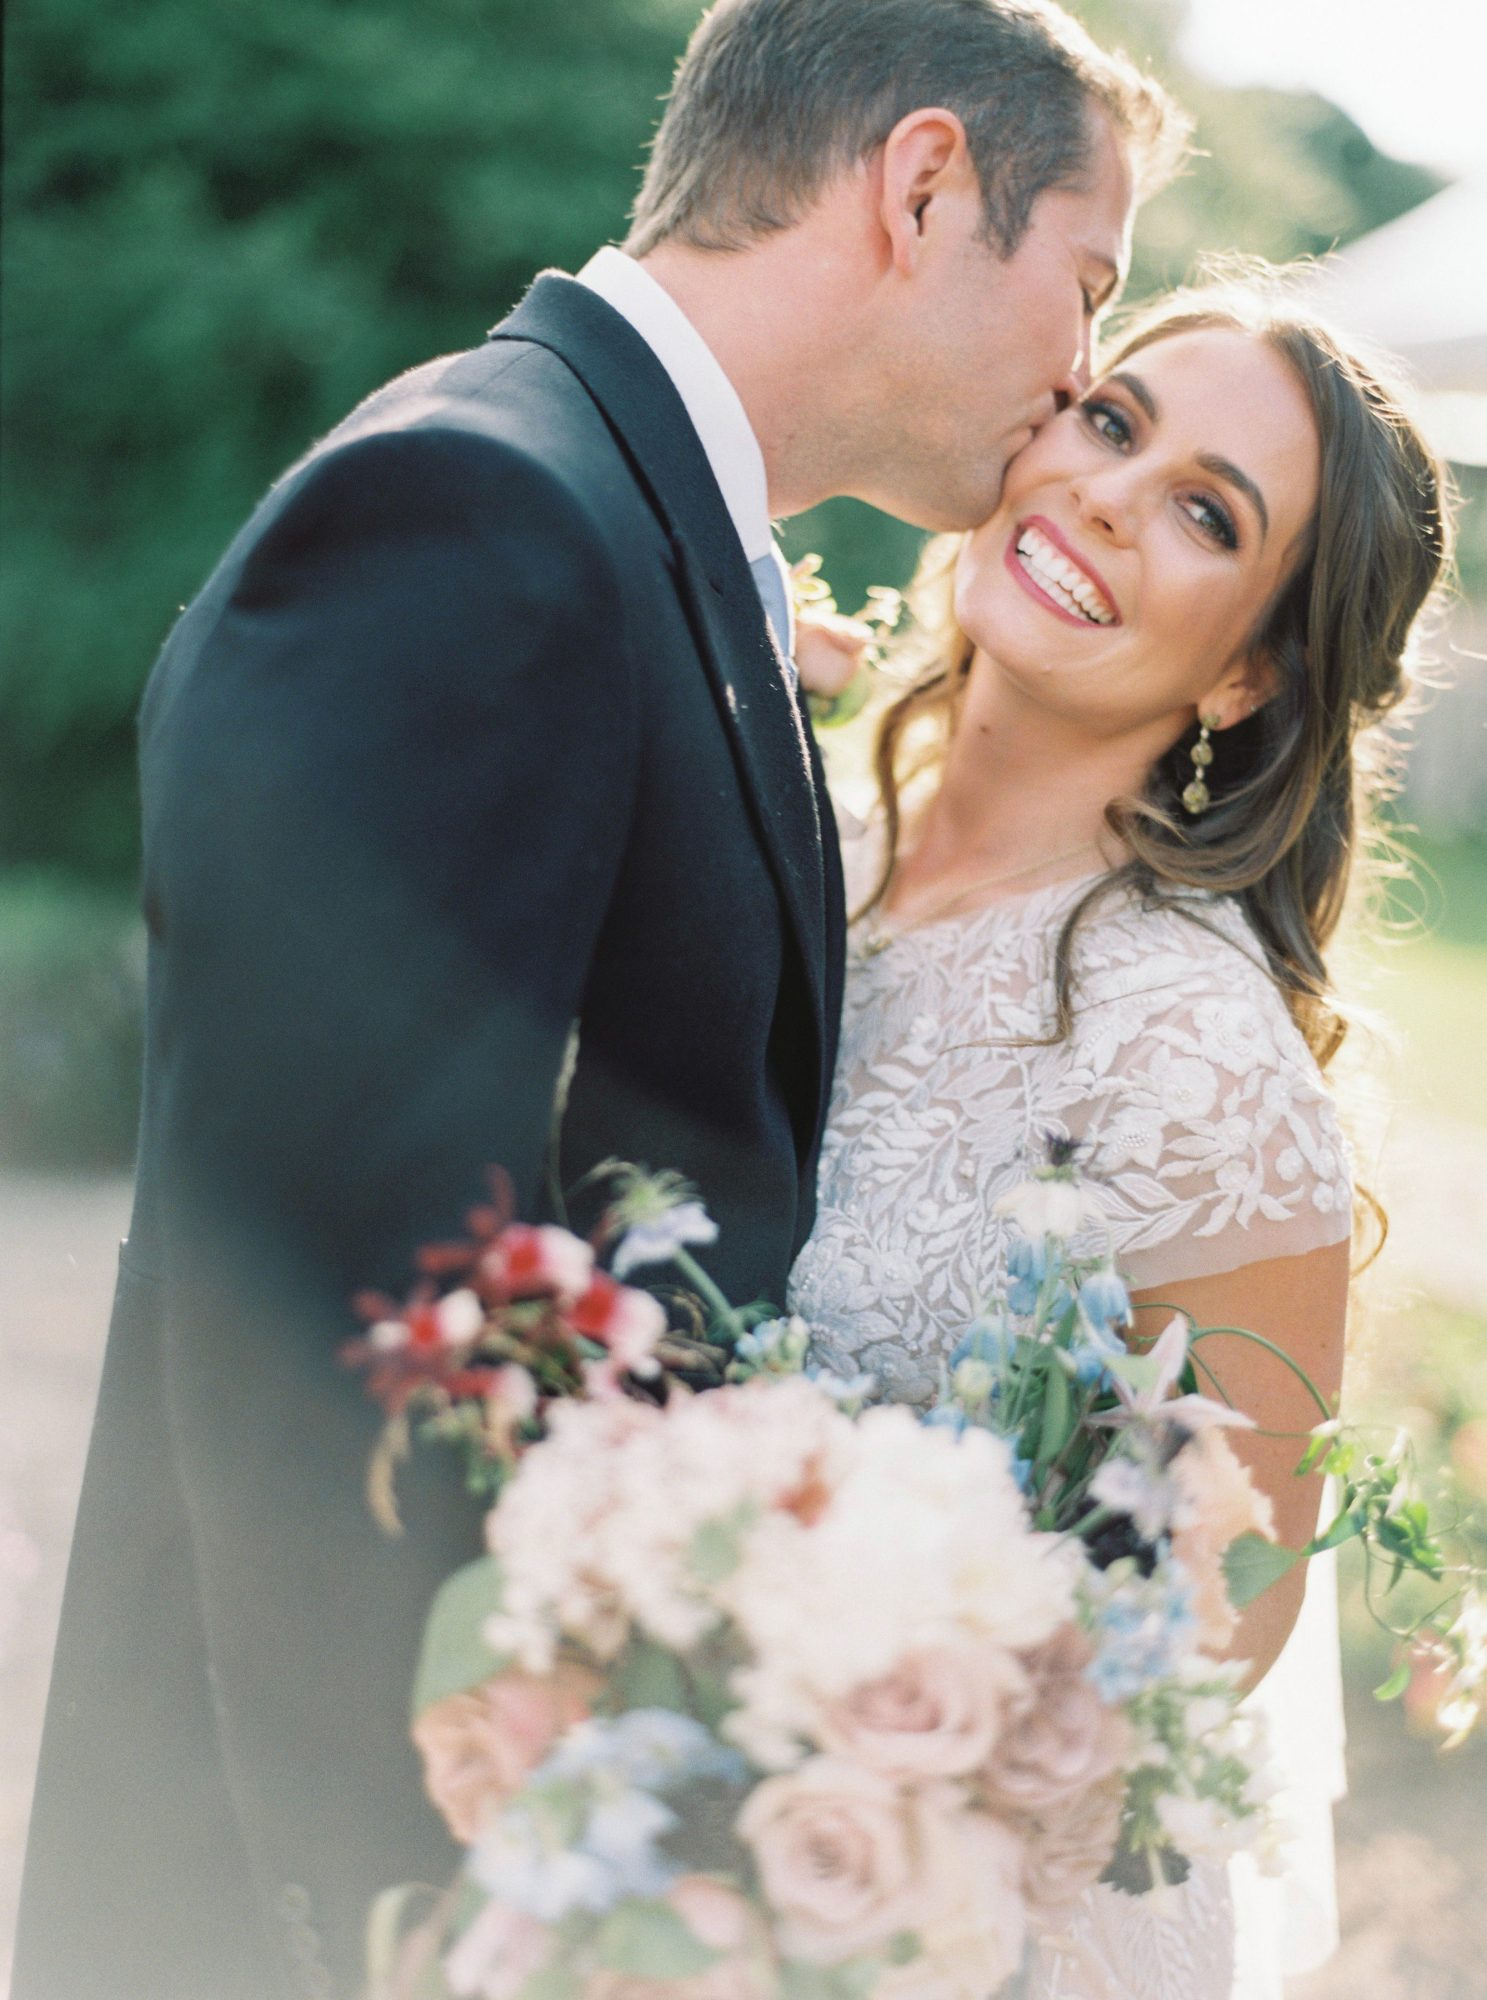 groom kissing bride on cheek outside smiling